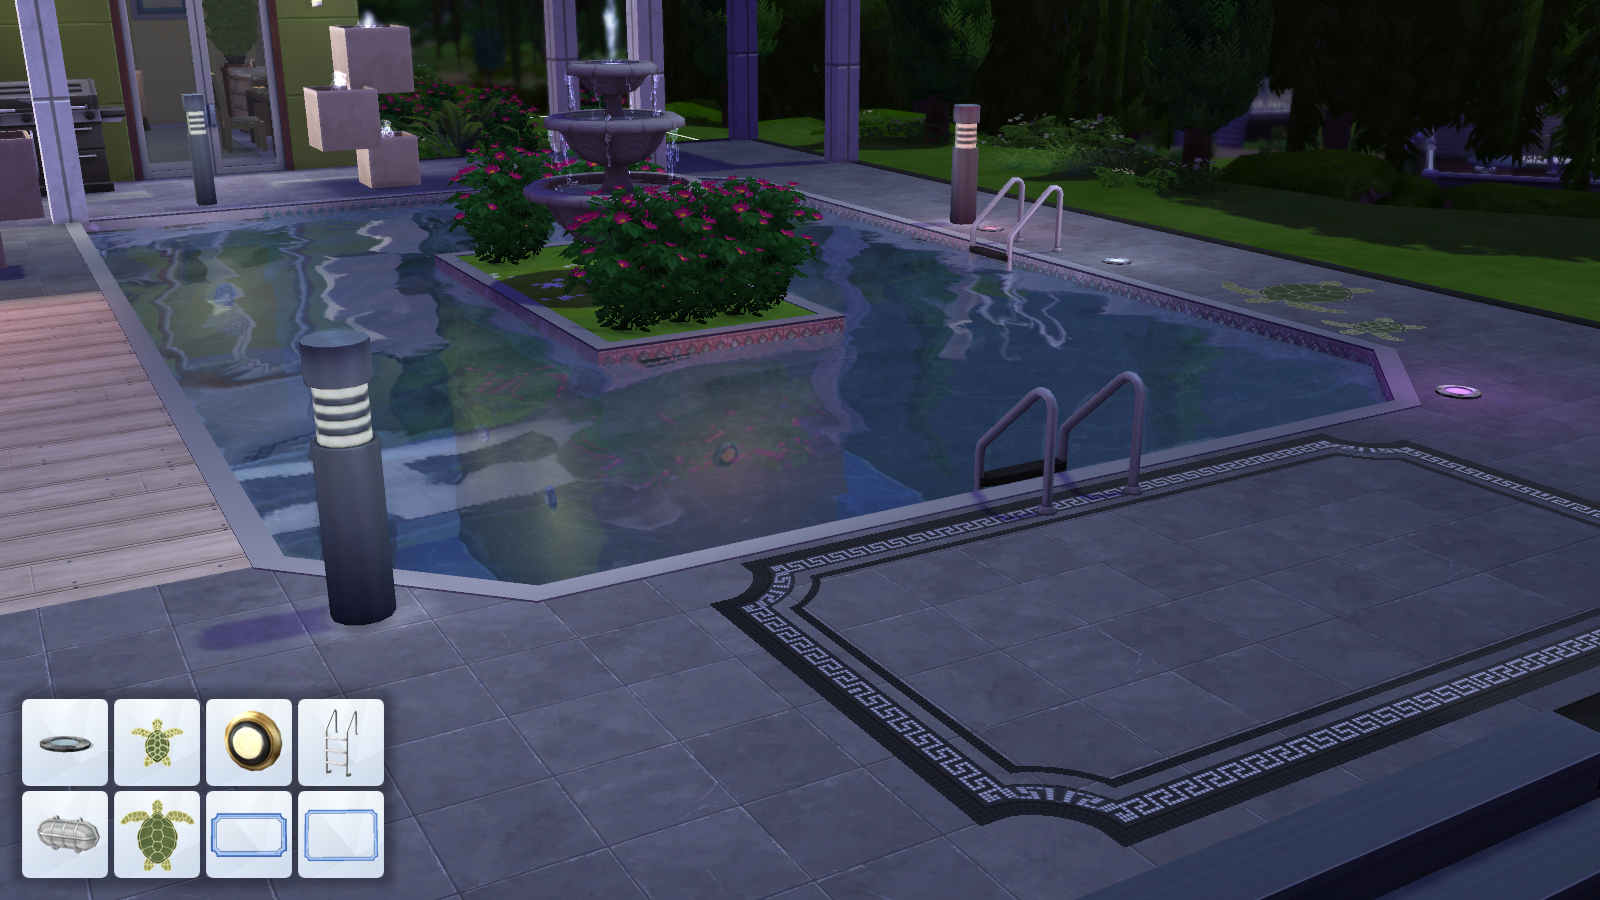 The sims 4 updates page 2 simcitizens for Pool designs sims 4